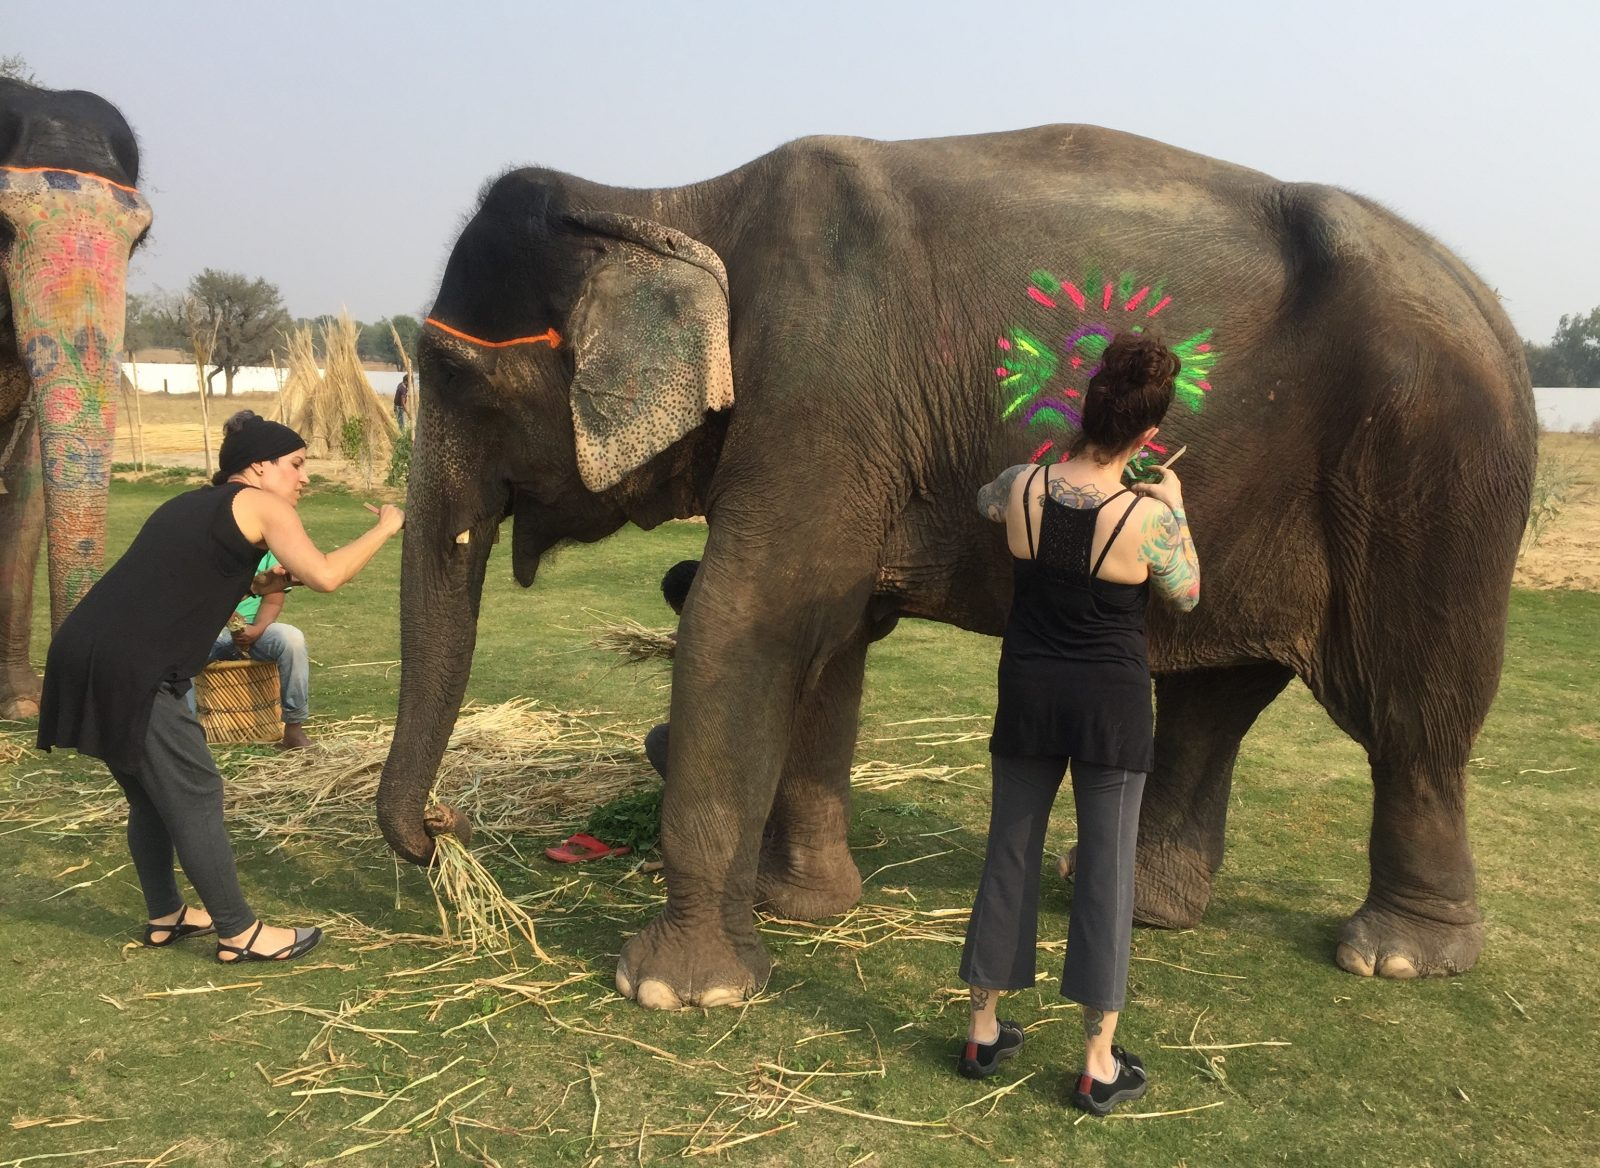 Elephant Painting in Jaipur